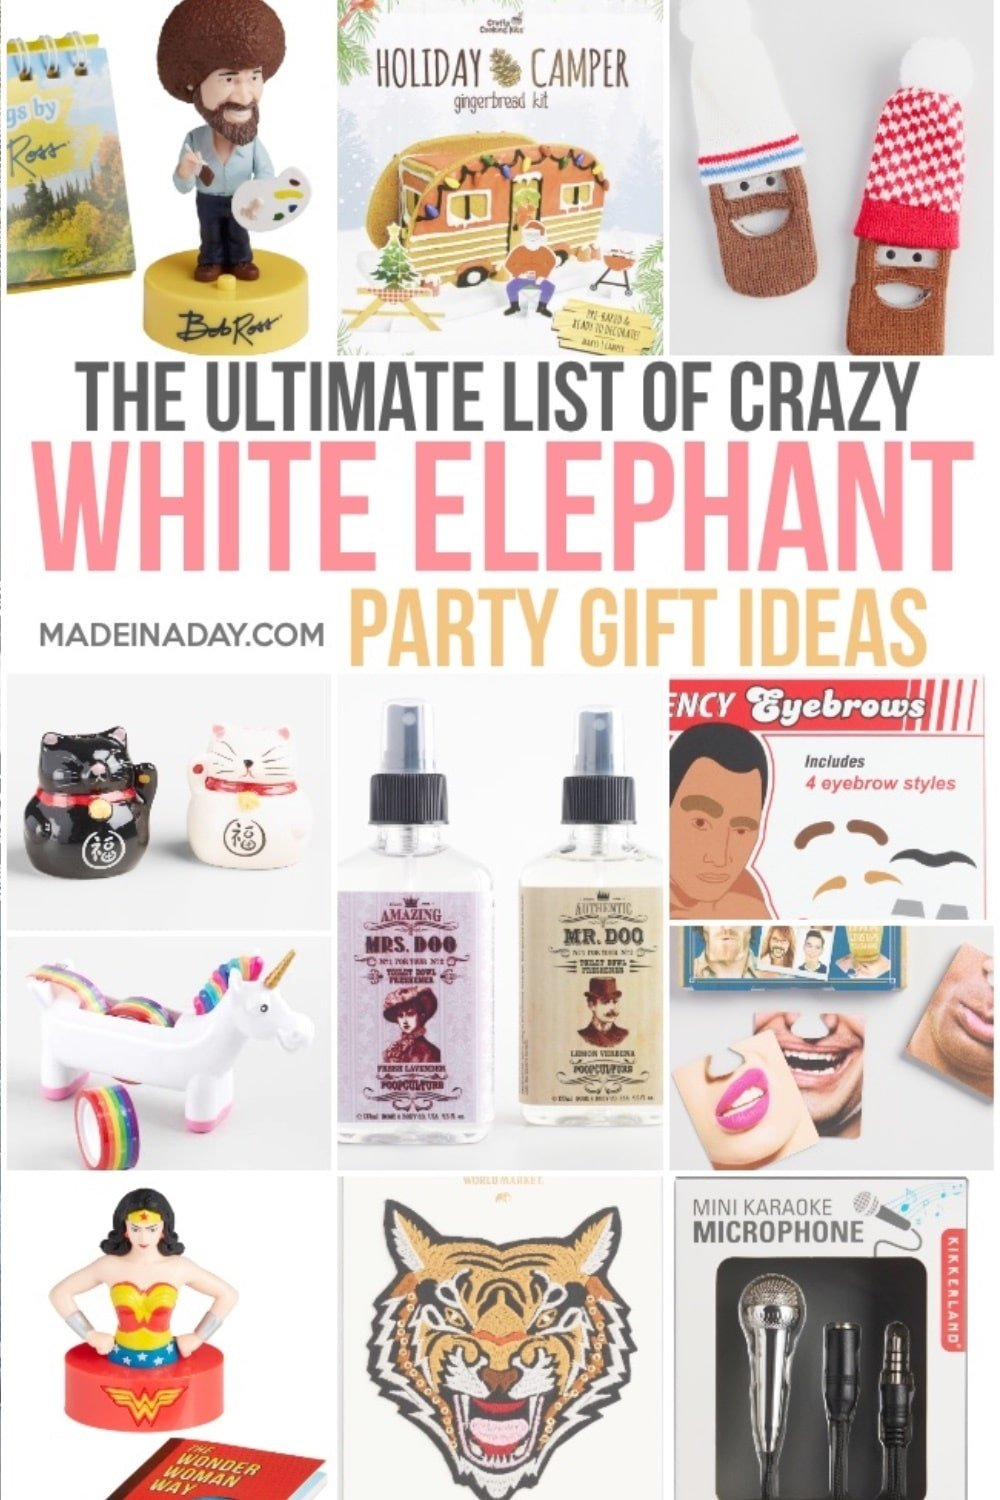 The Ultimate List of White Elephant Gift Ideas